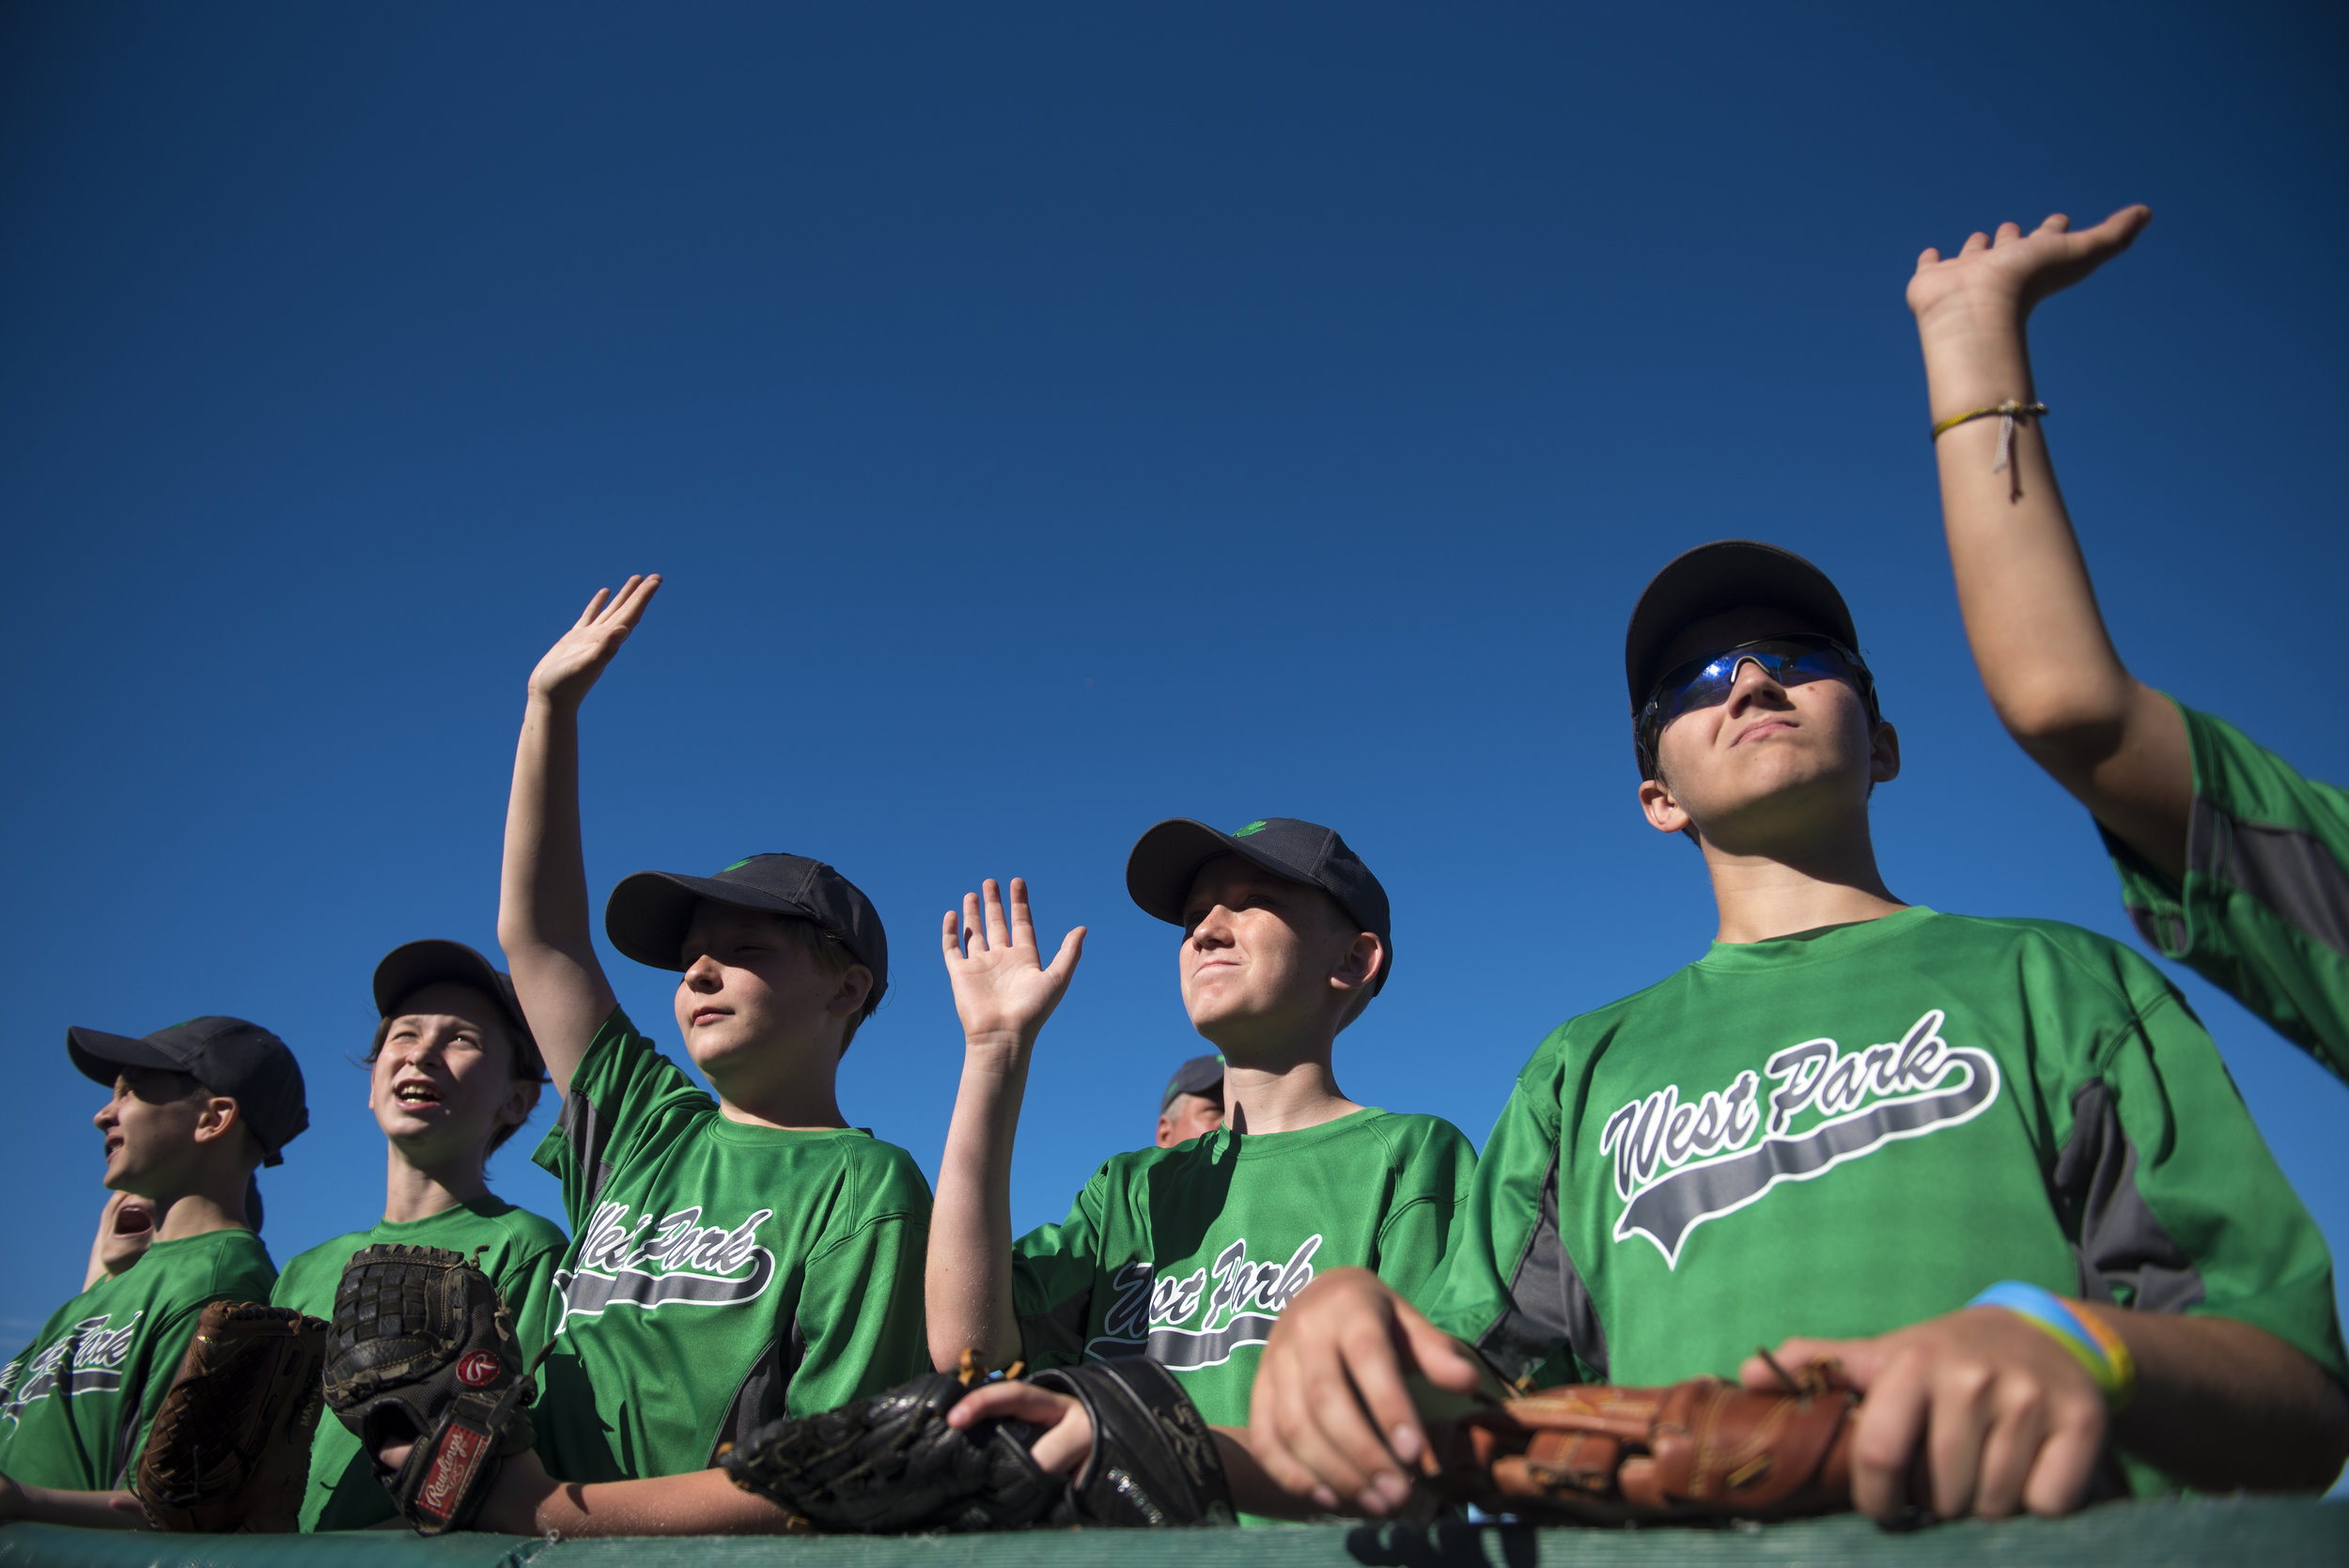 Little league players wave to fans prior to escorting members of the Lake Erie Crushers onto the field on July 7, 2018 at Sprenger Stadium in Avon, Ohio.